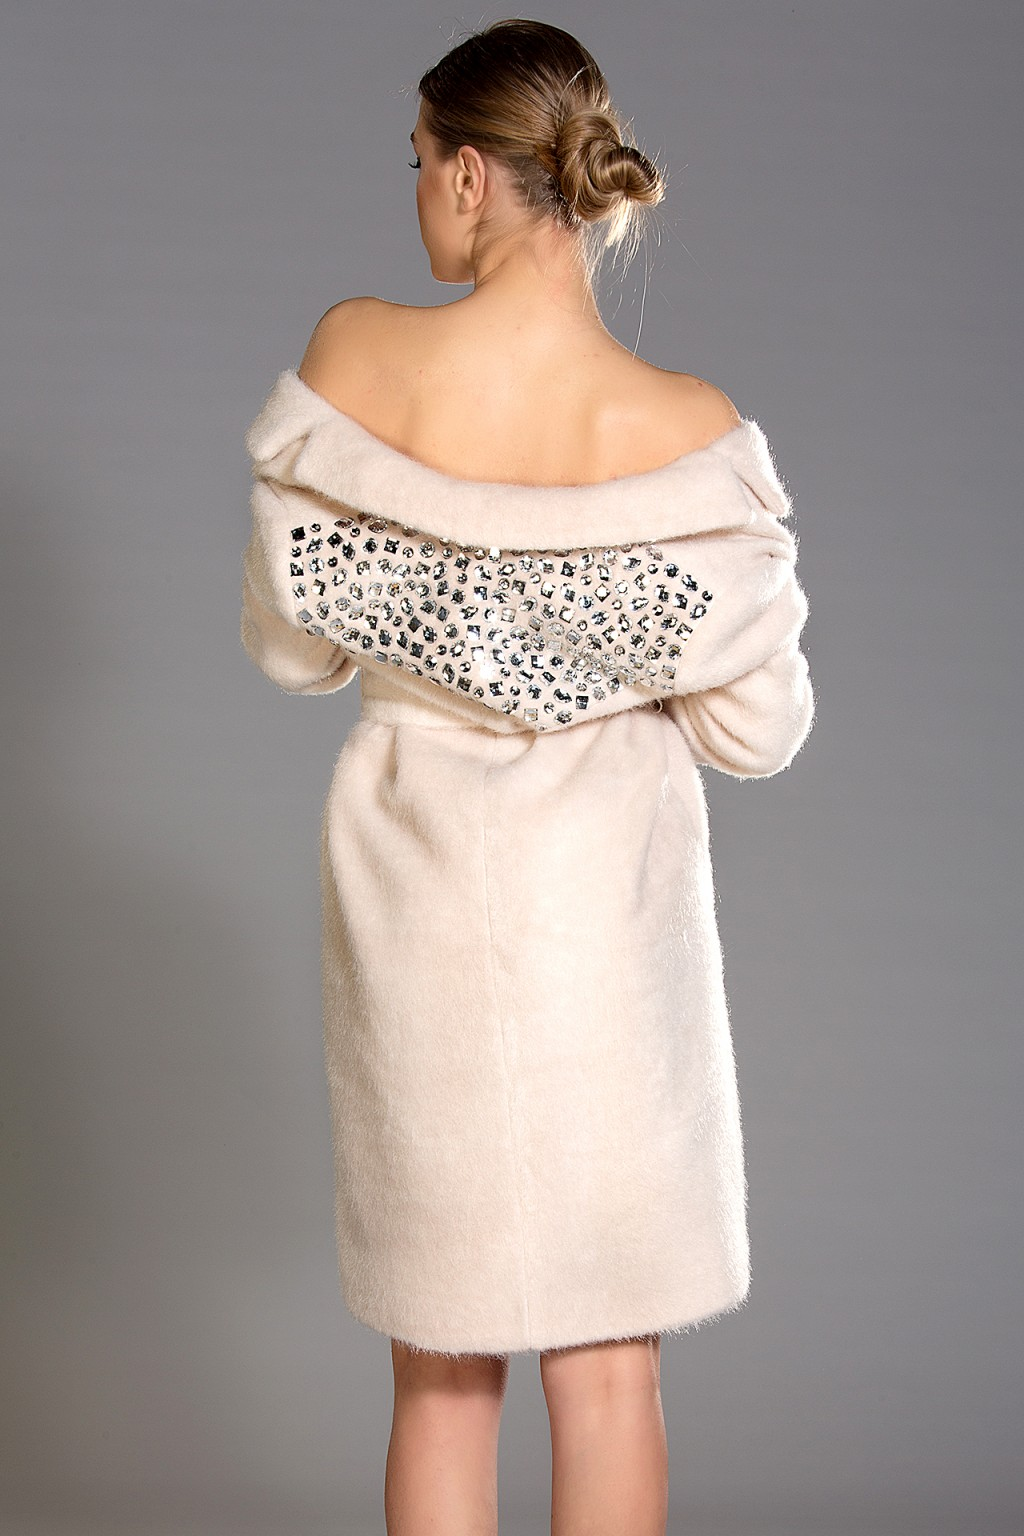 Roma mohair-blend coat with clear crystals